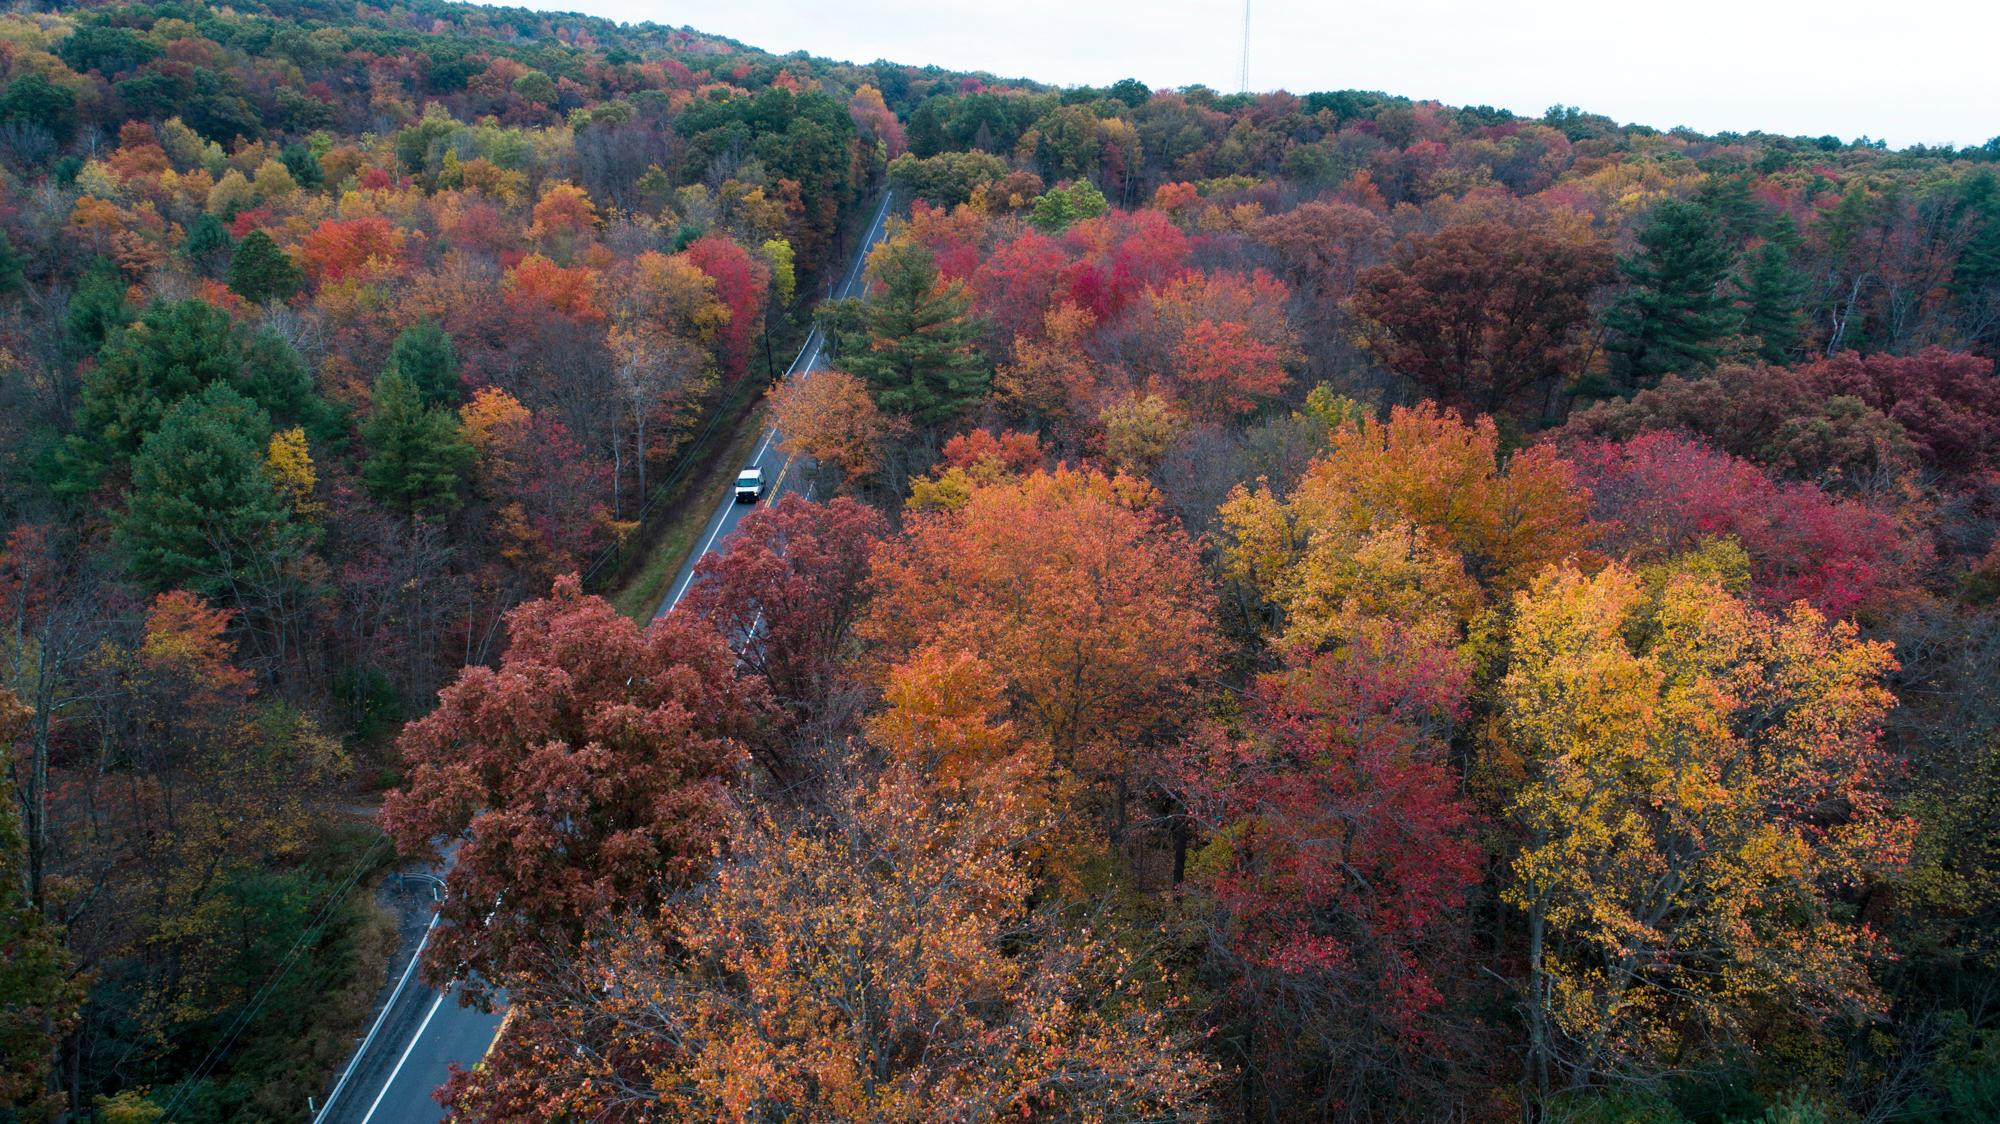 FILE - This Monday, Oct. 23, 2017 file photo show fall colors beginning to show along Route 209 in Reilly Township, Schuylkill County, Pa. Across the United States, 2017's first freeze has been arriving further and further into the calendar, according to more than a century of measurements from weather stations nationwide. (David McKeown/Republican-Herald via AP)